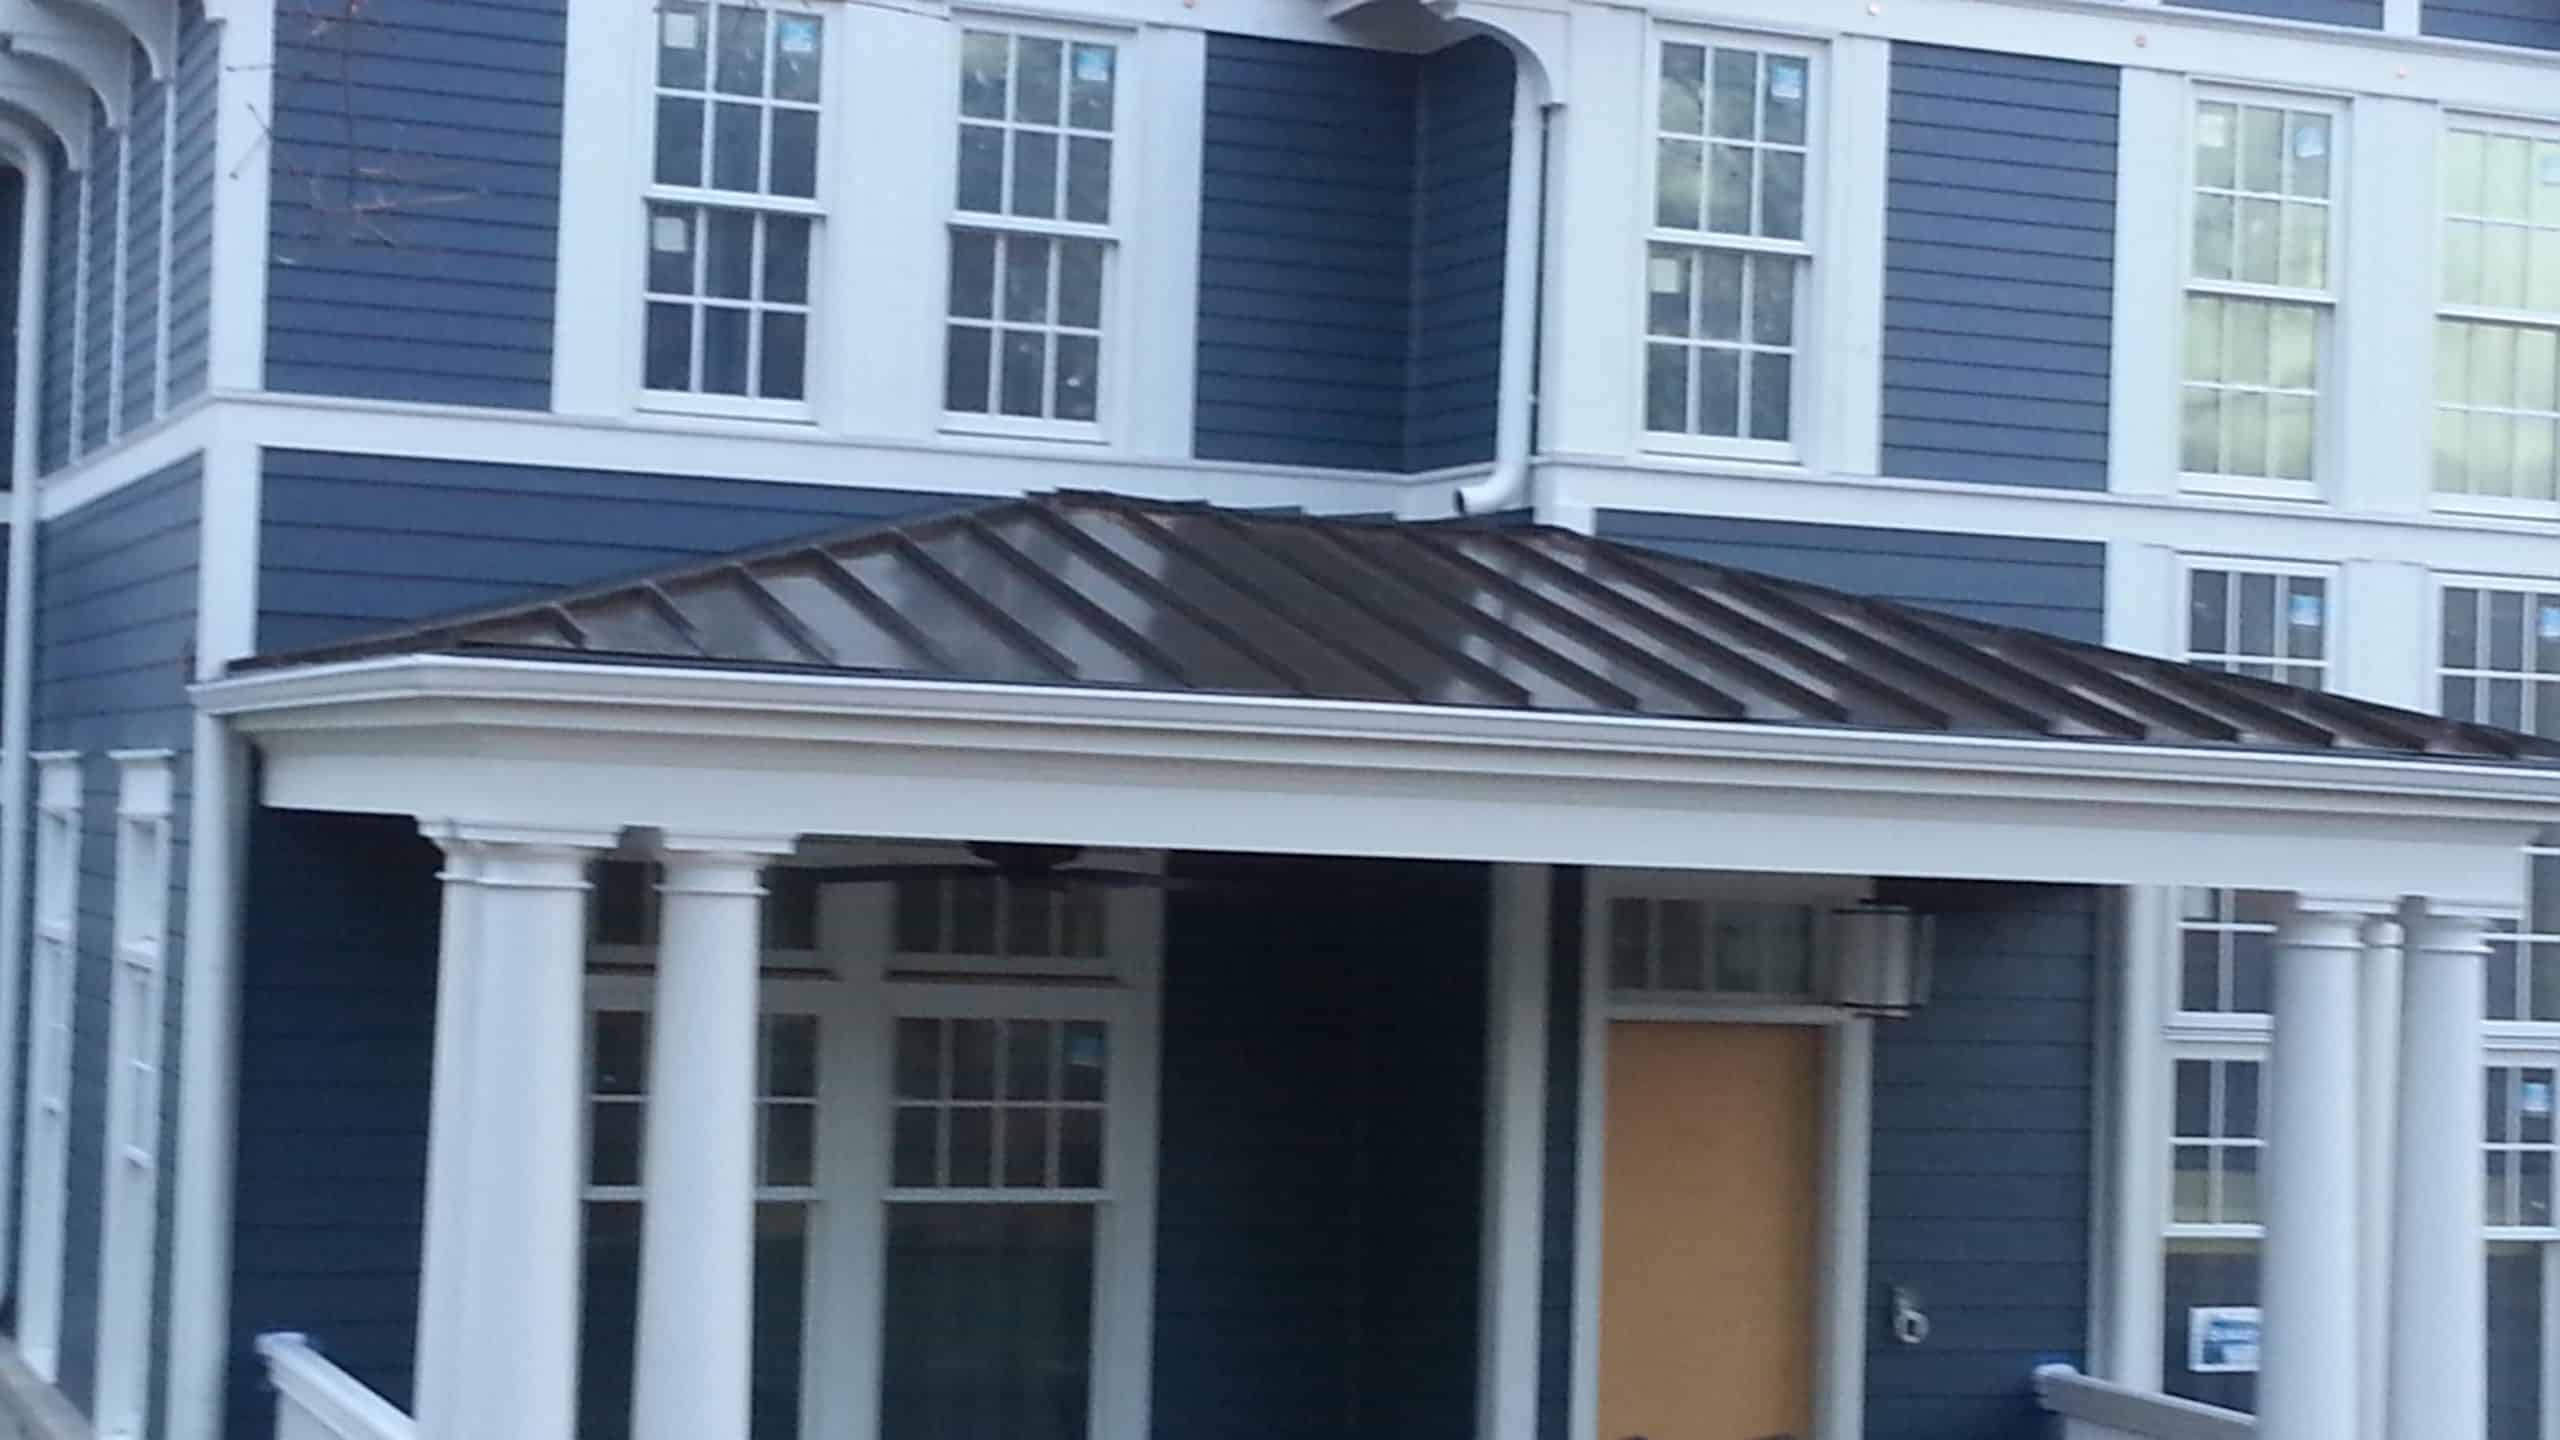 Standing Seam Metal Roof Project U2013 Chicago IL